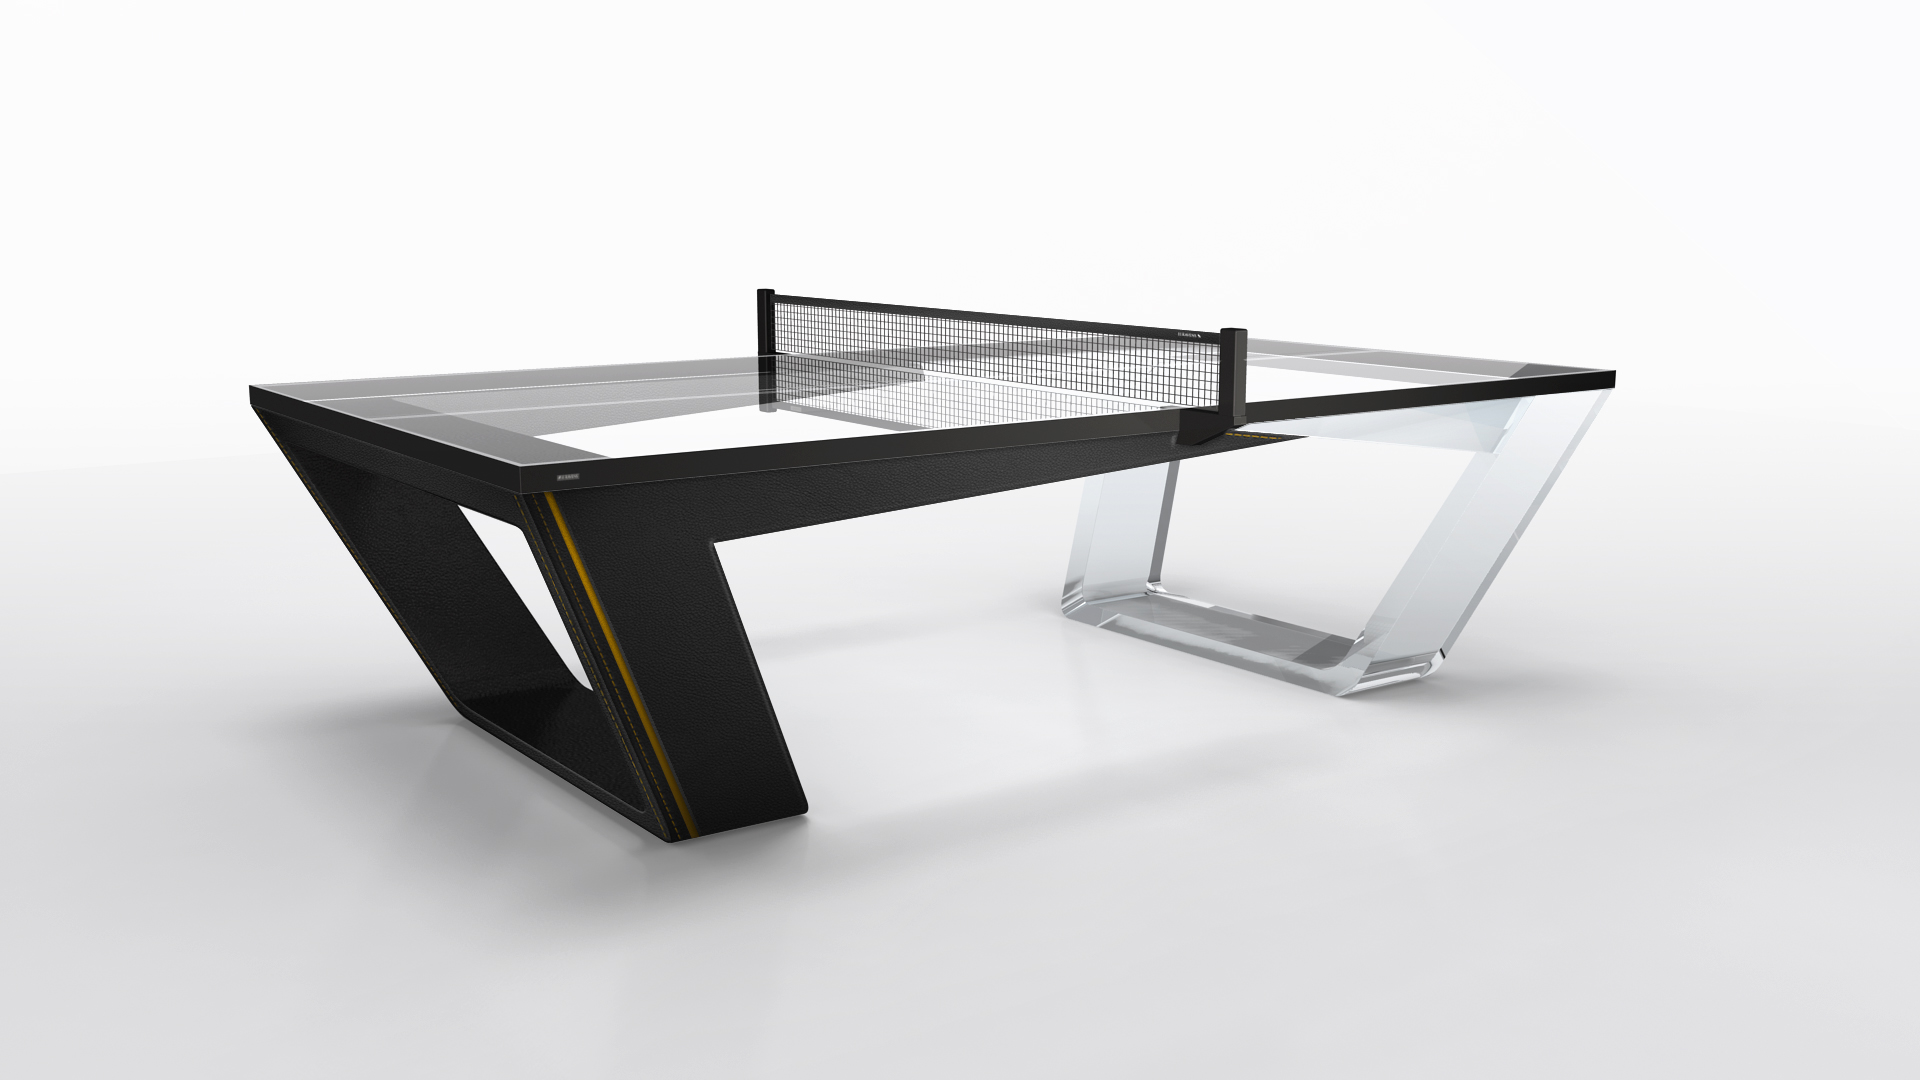 avettore aereo limited edition table tennis table shop table tennis tables billiards. Black Bedroom Furniture Sets. Home Design Ideas